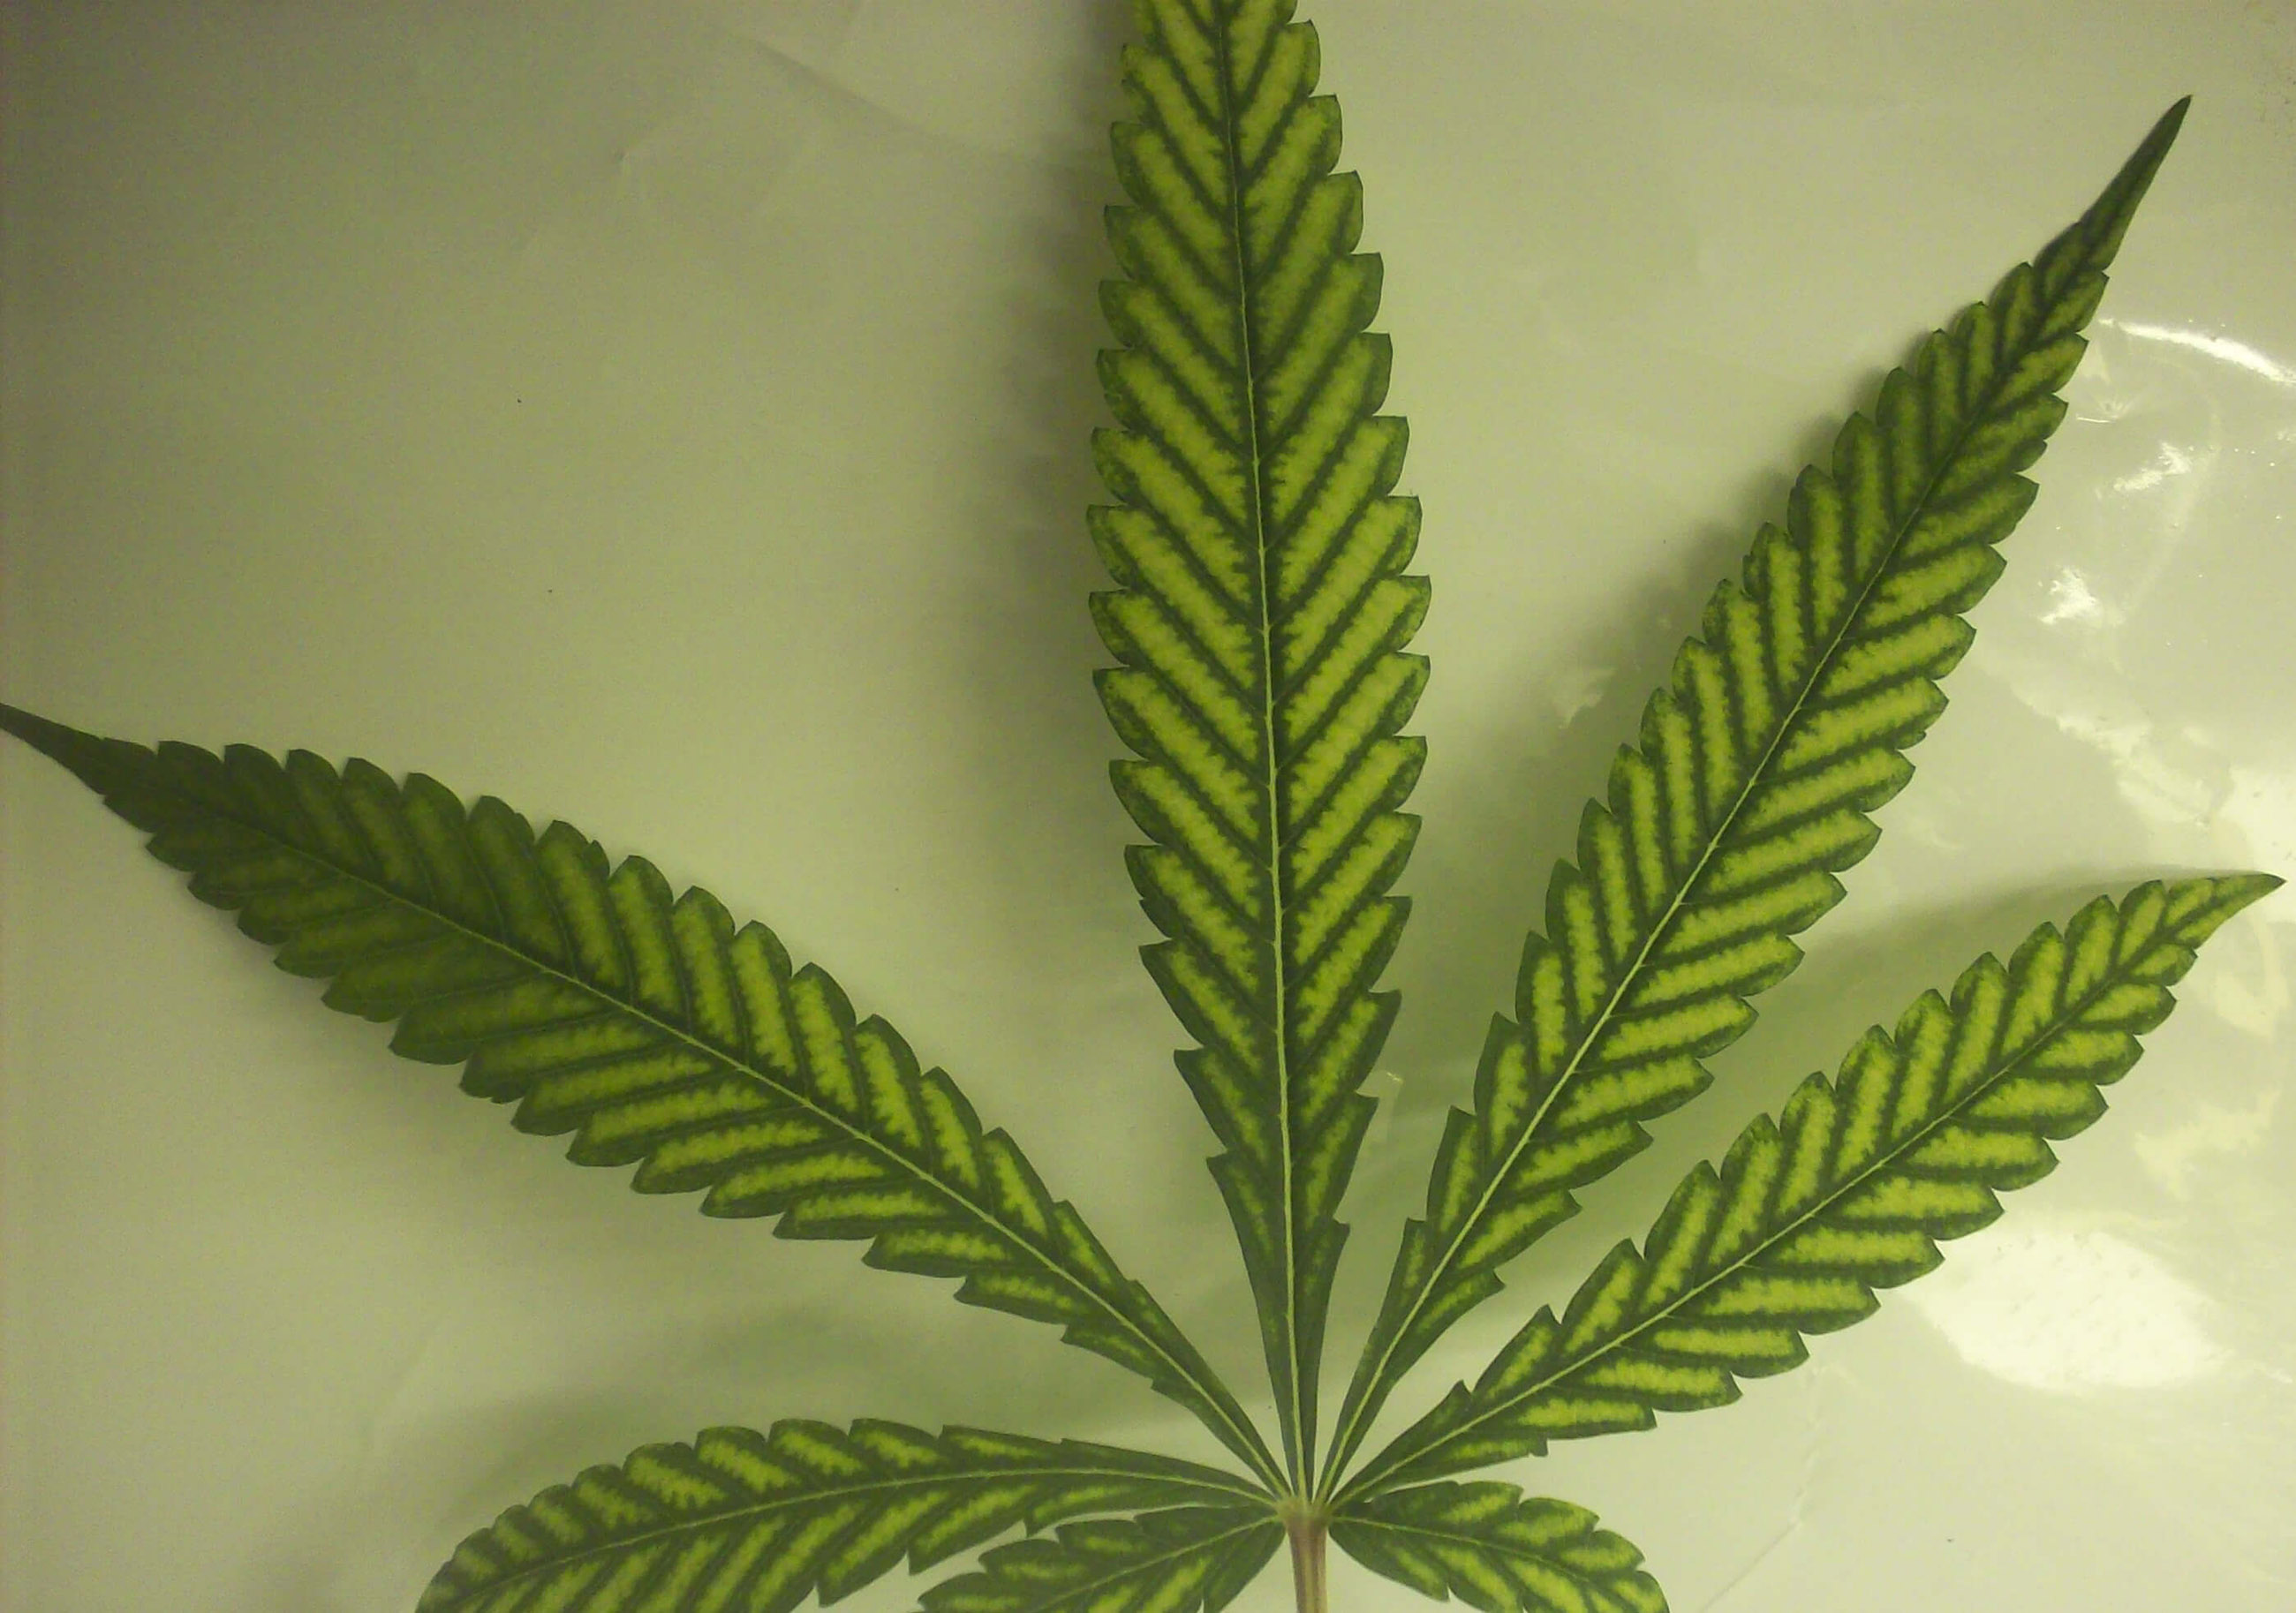 Tutorial: What's Wrong With My Cannabis Plant?